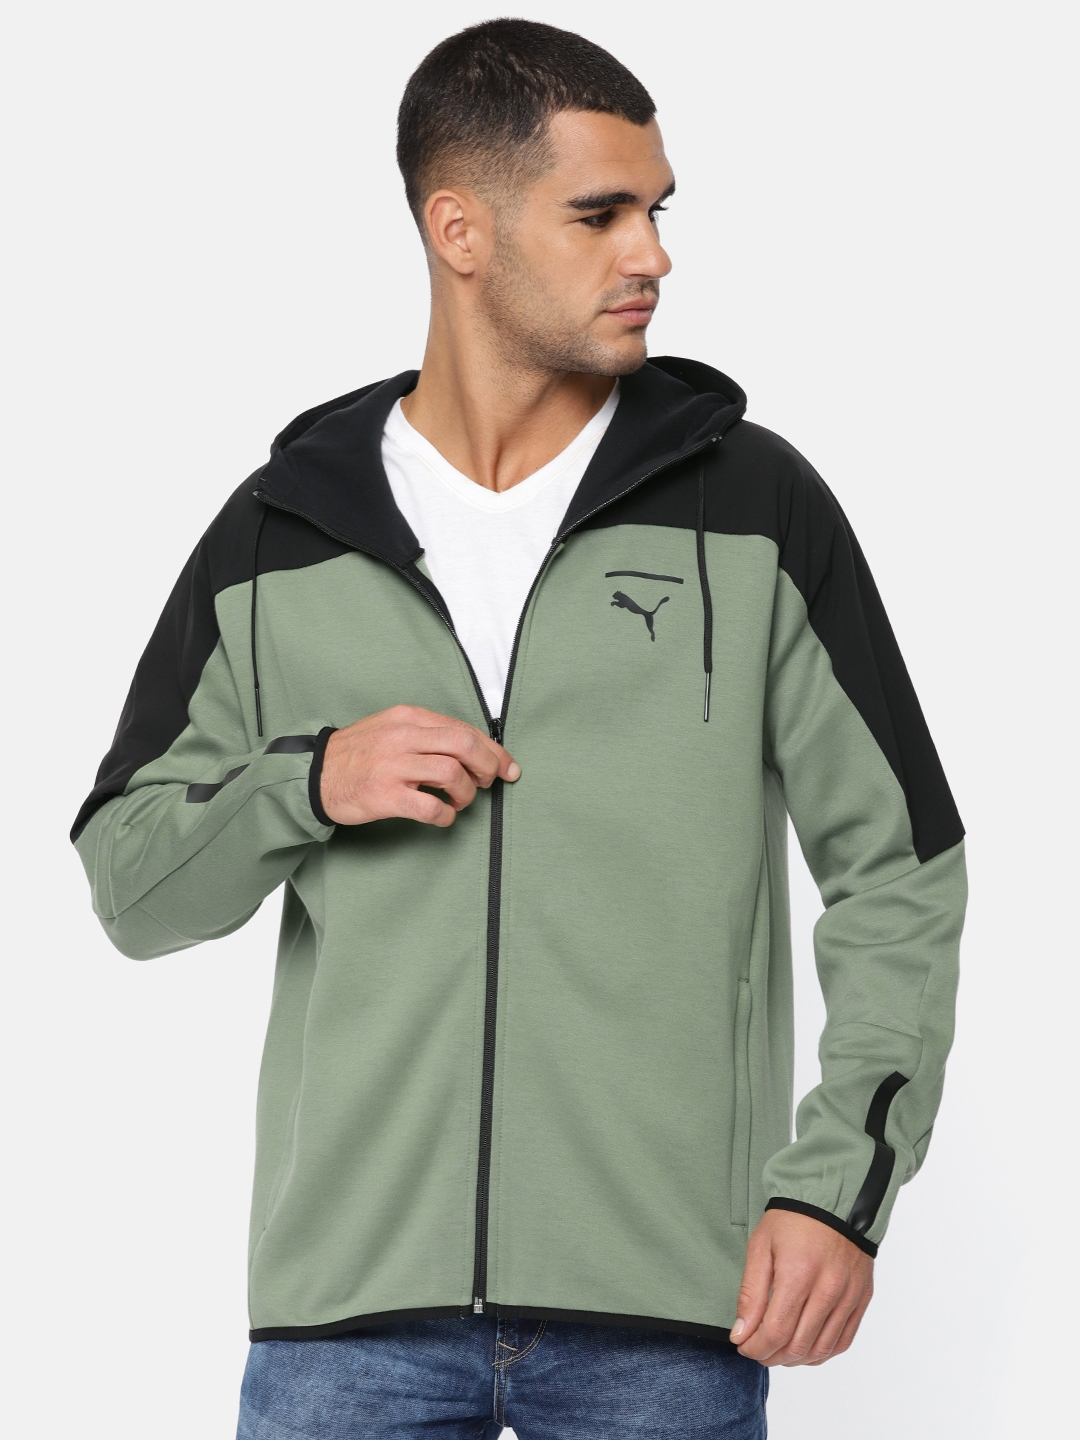 db1e0fe8d Buy Puma Olive Green Pace Lab FZ Hoody Hooded Sporty Jacket ...